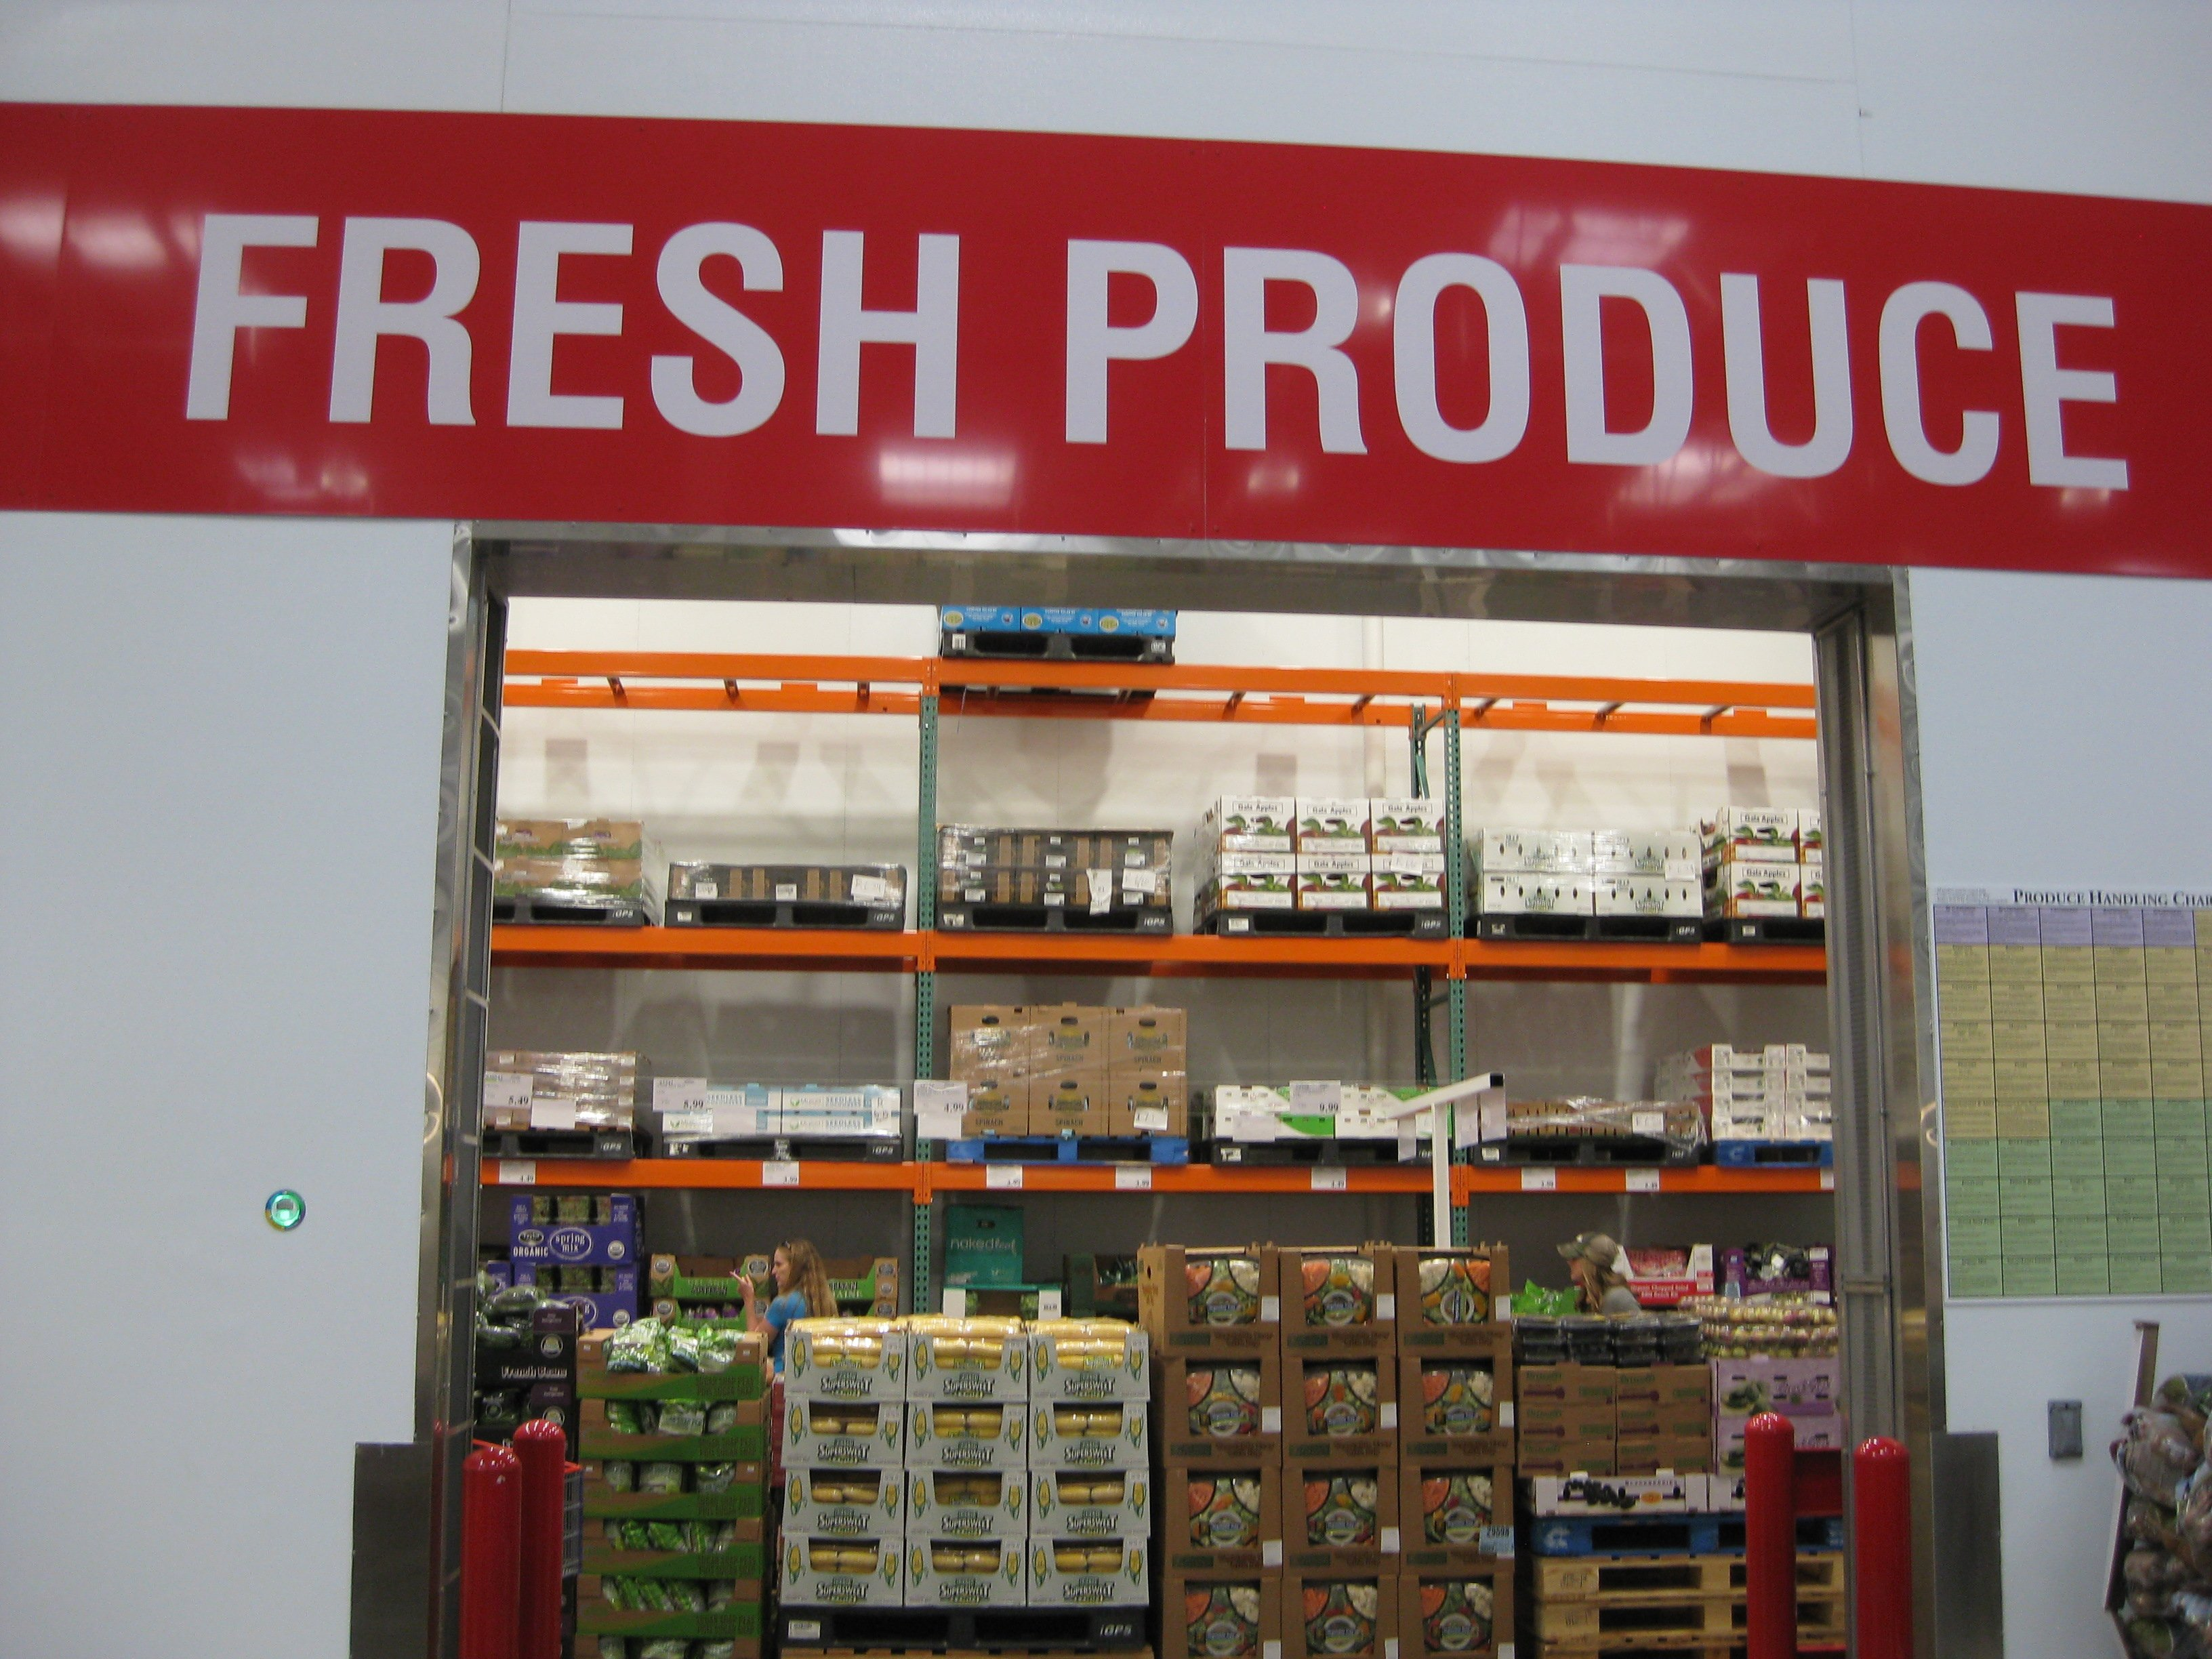 Costco's fresh produce refrigeration section